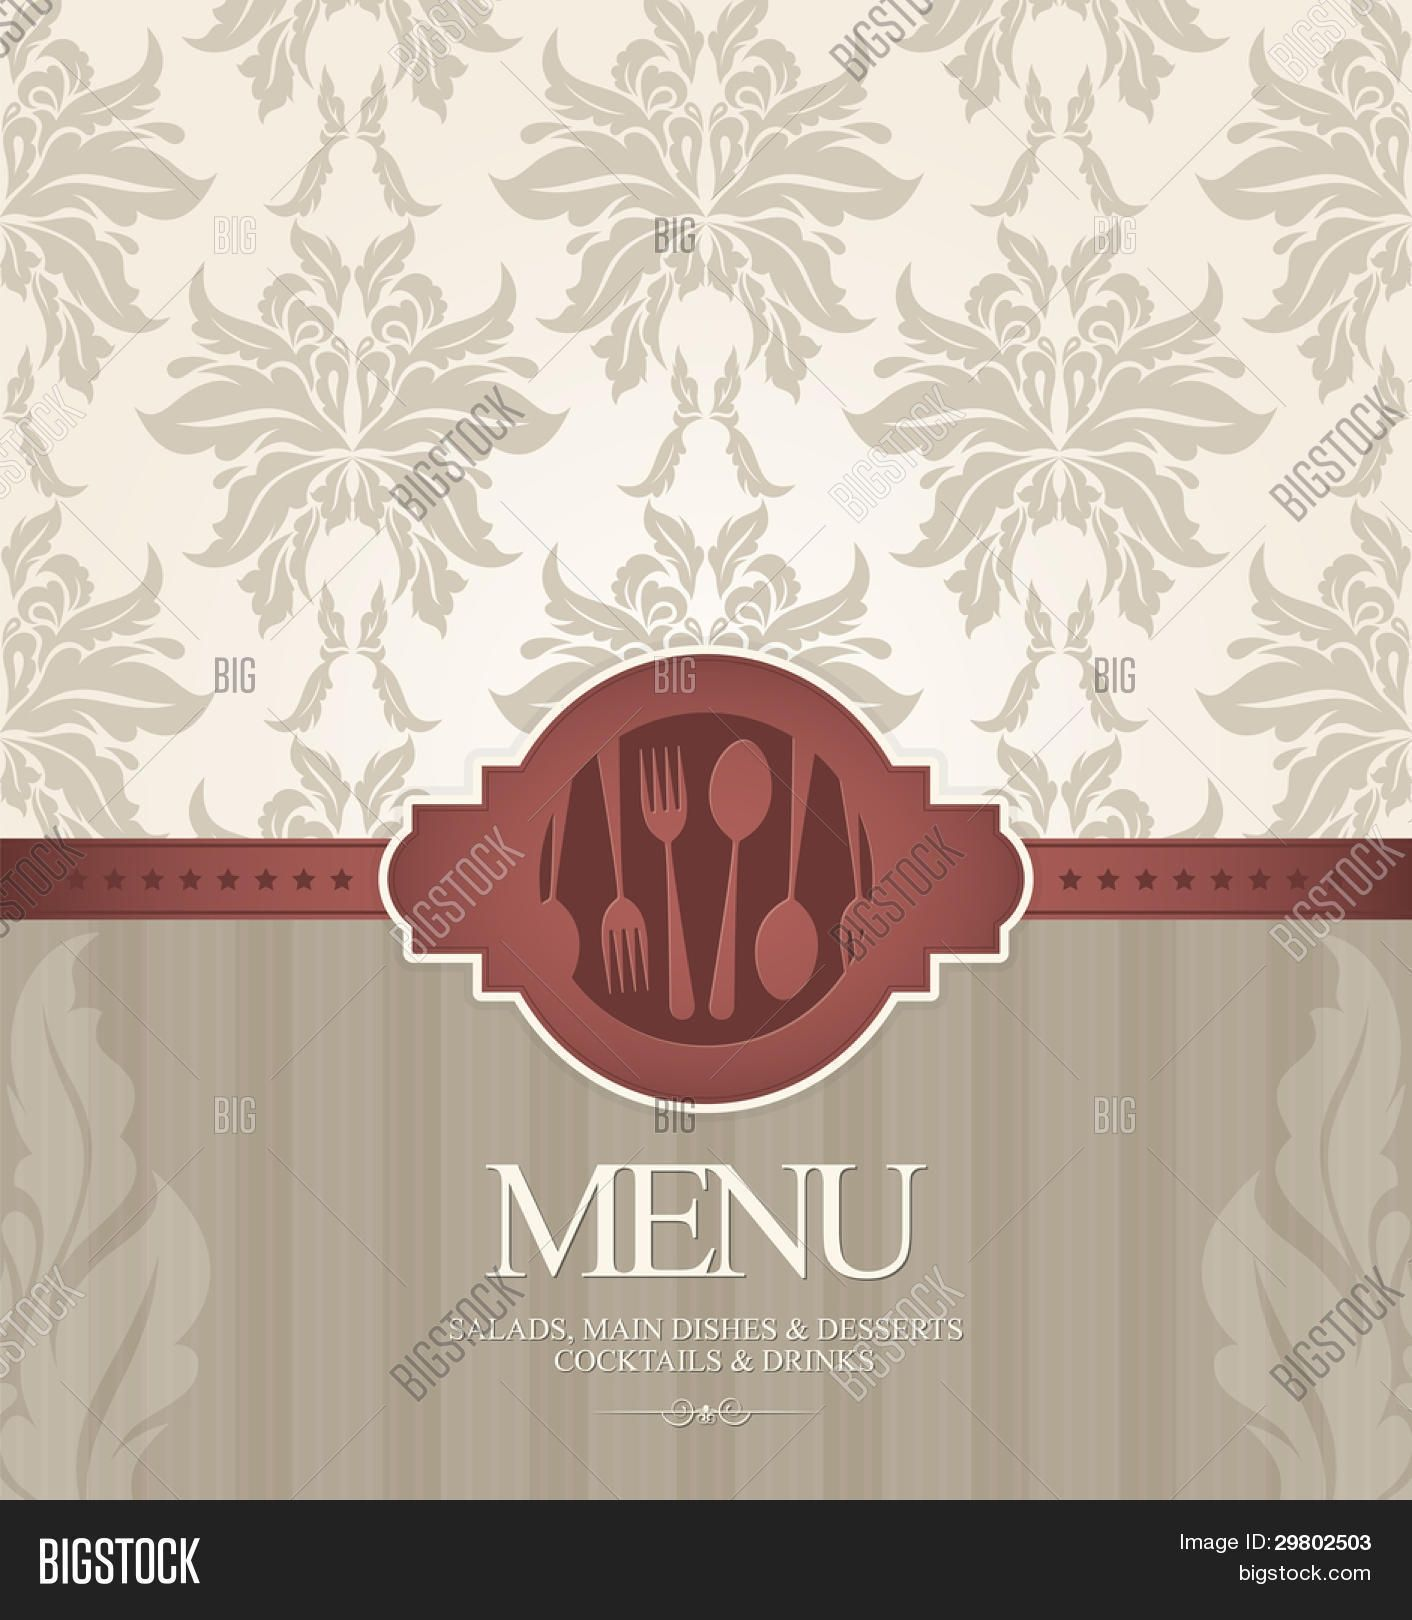 hd background menu design - restaurant menu design with seamless